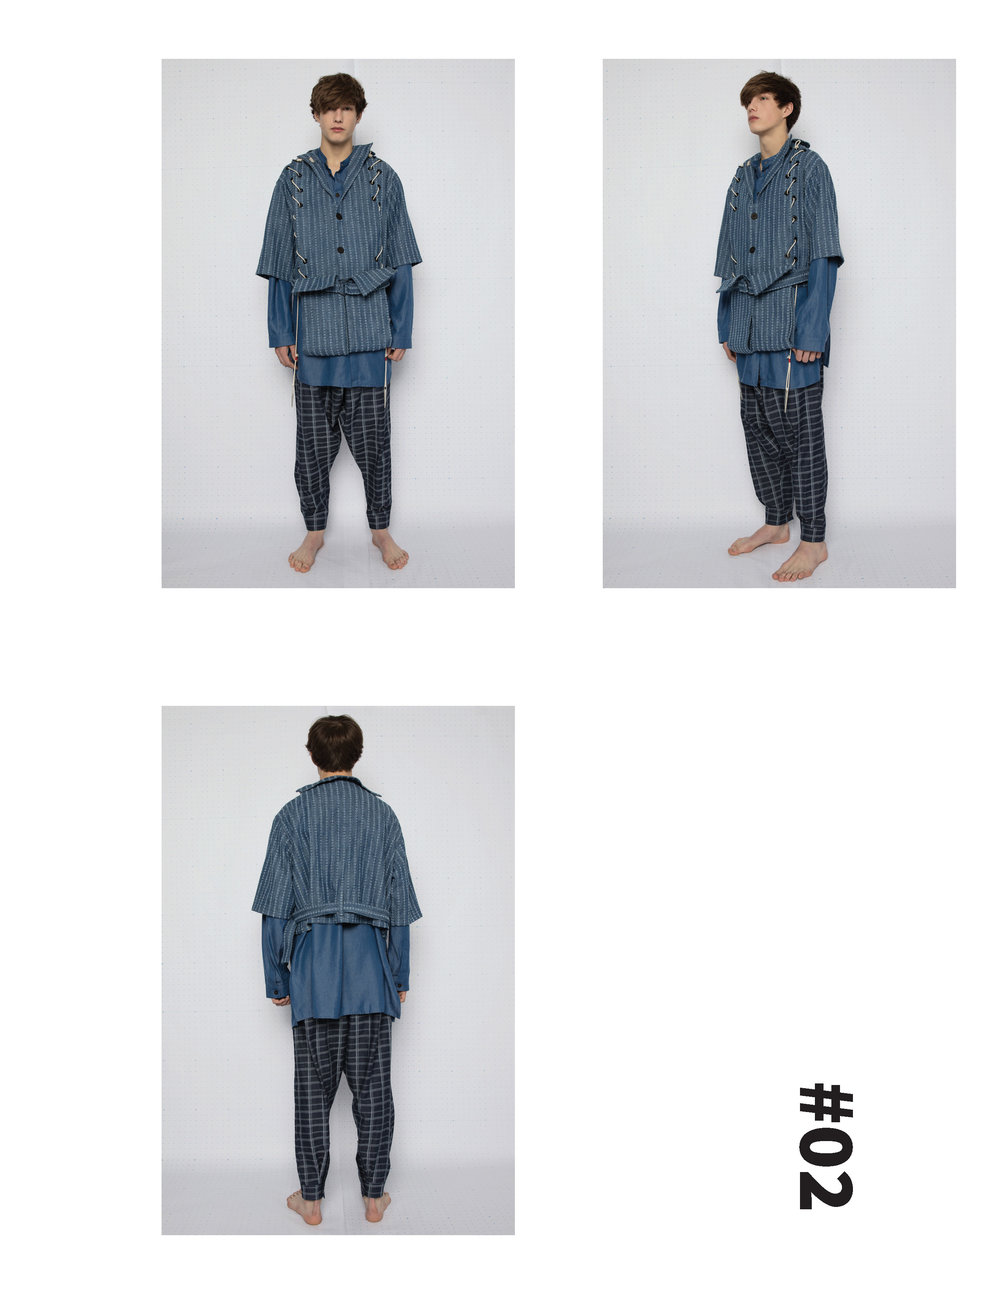 PDF_Outcome01_Lookbook_頁面_17.jpg